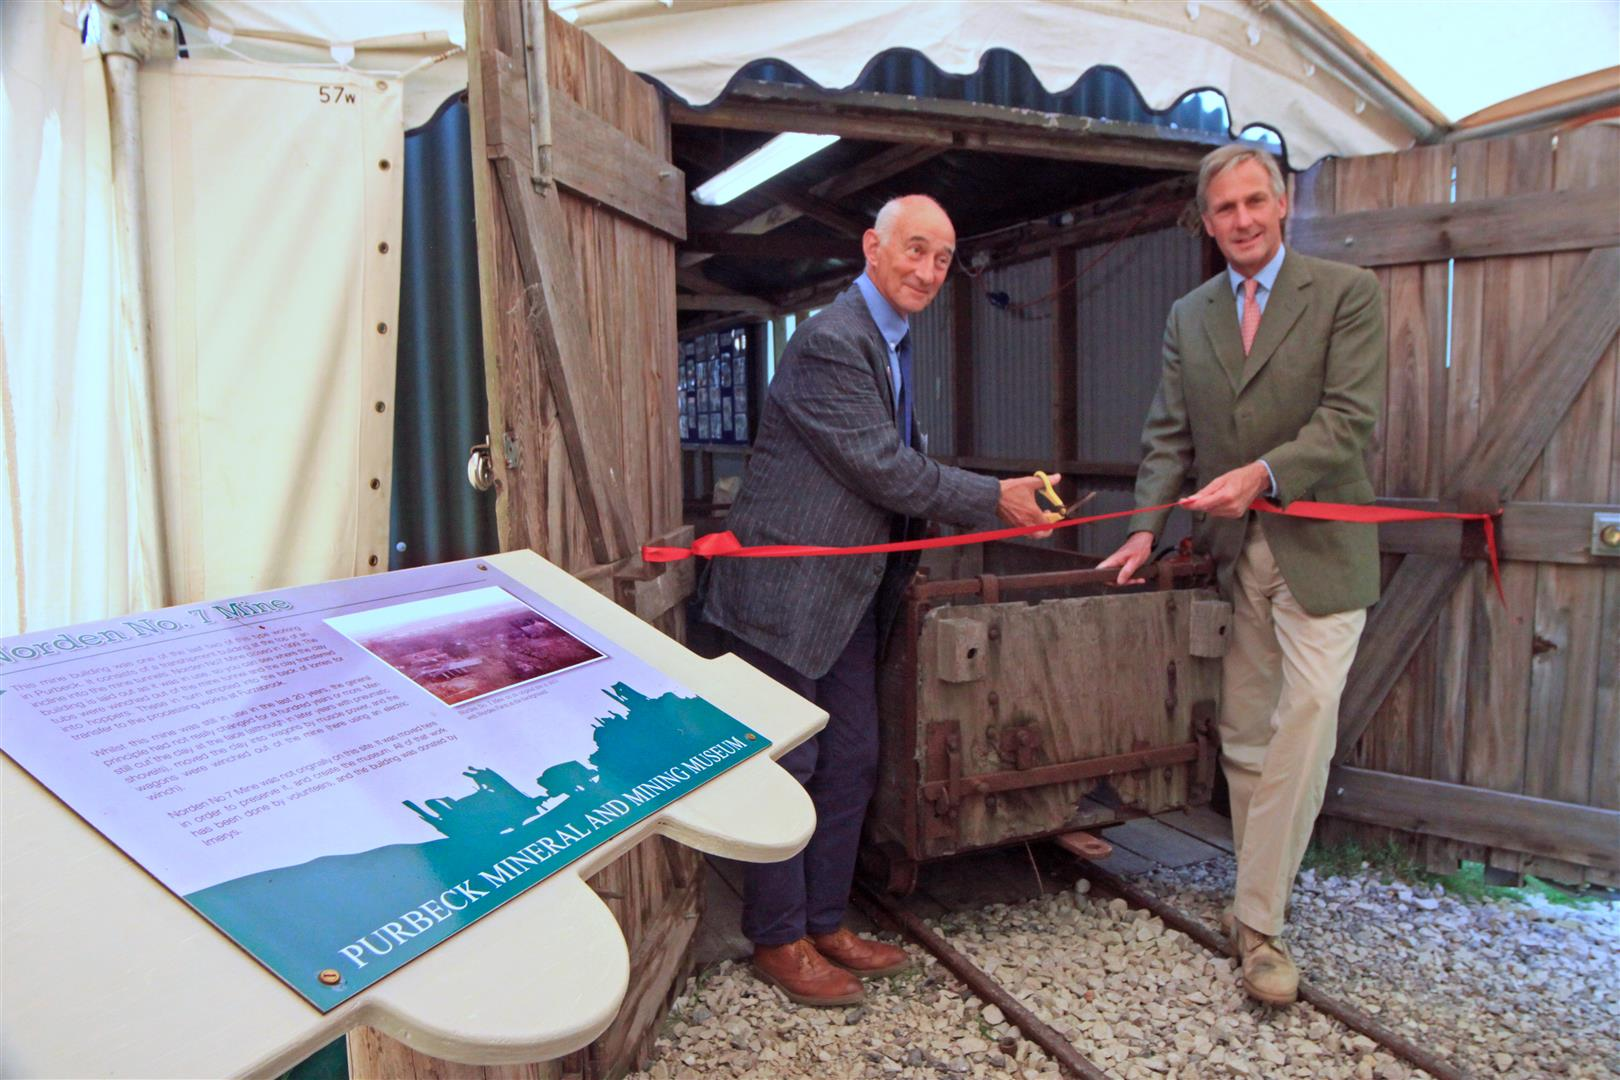 Paul Atterbury (L) & Richard Drax (R) PMMM official opening Norden.